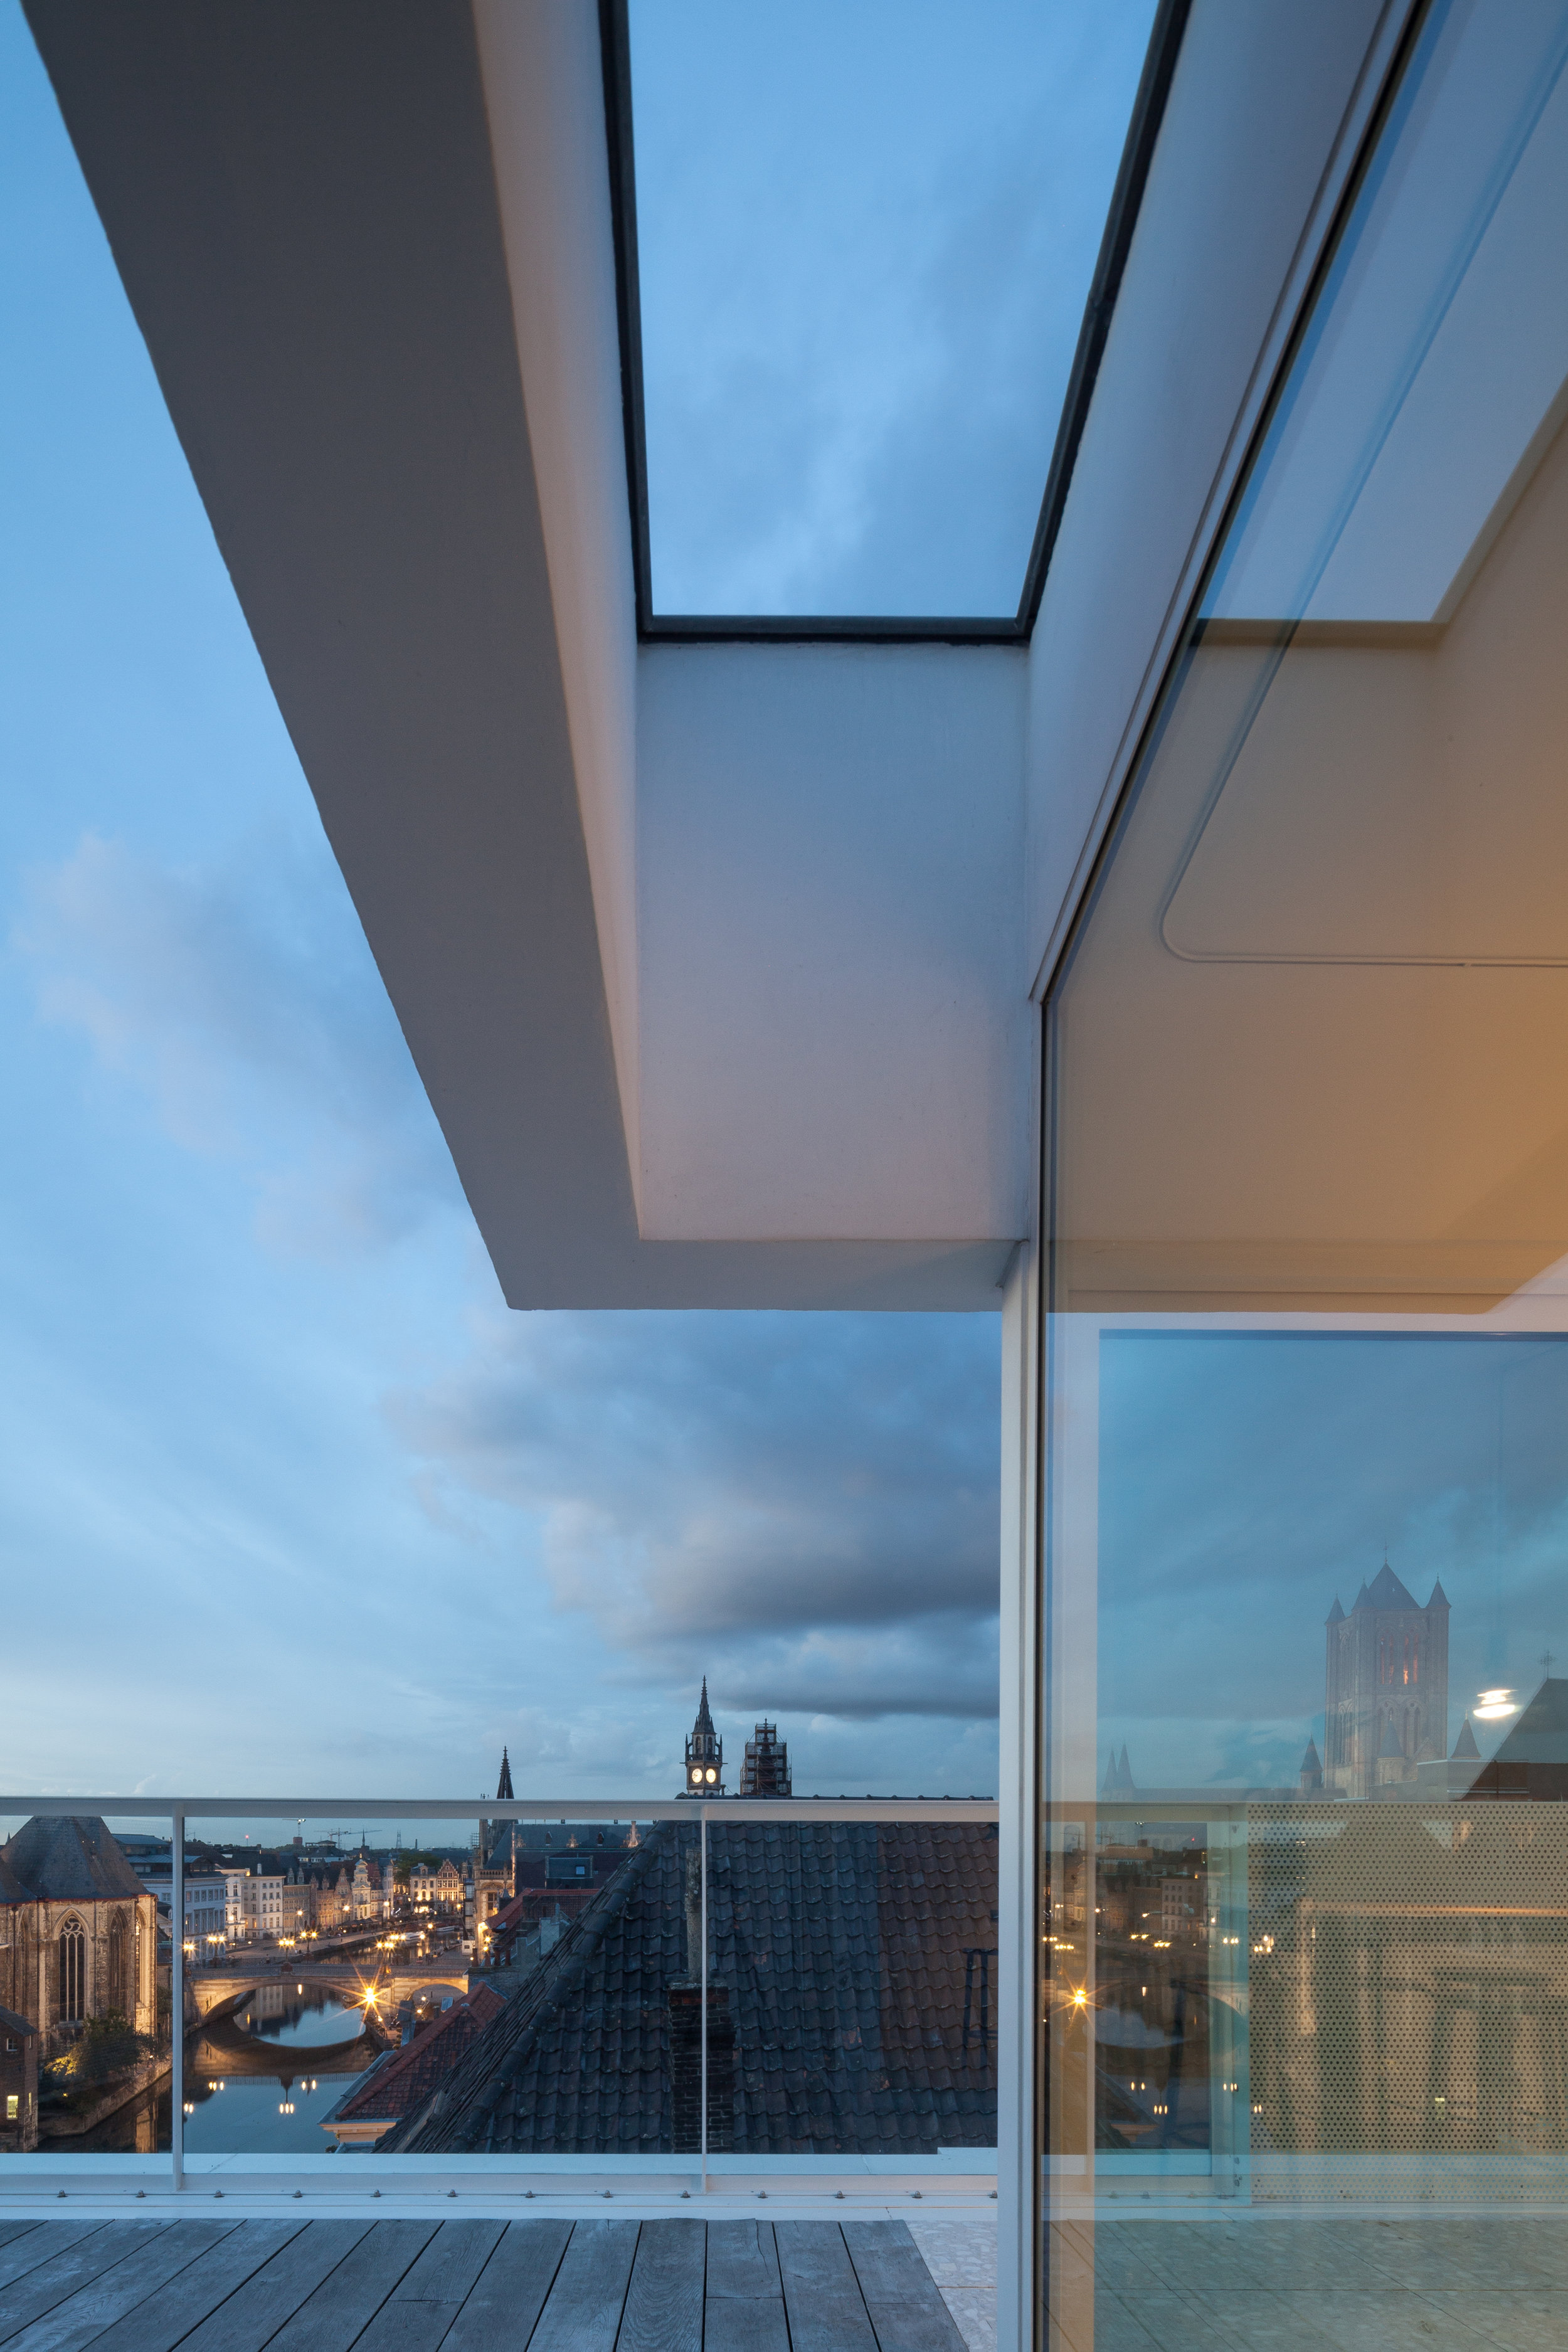 Penthouse MC , Gent Belgium  Rooftop extension and renovation of a fifties apartment block in the historic city center.  The penthouse seemingly floats in a sea of rooftops, playing with refrences to the modernist ship style. Views are created towards the various anchor points.